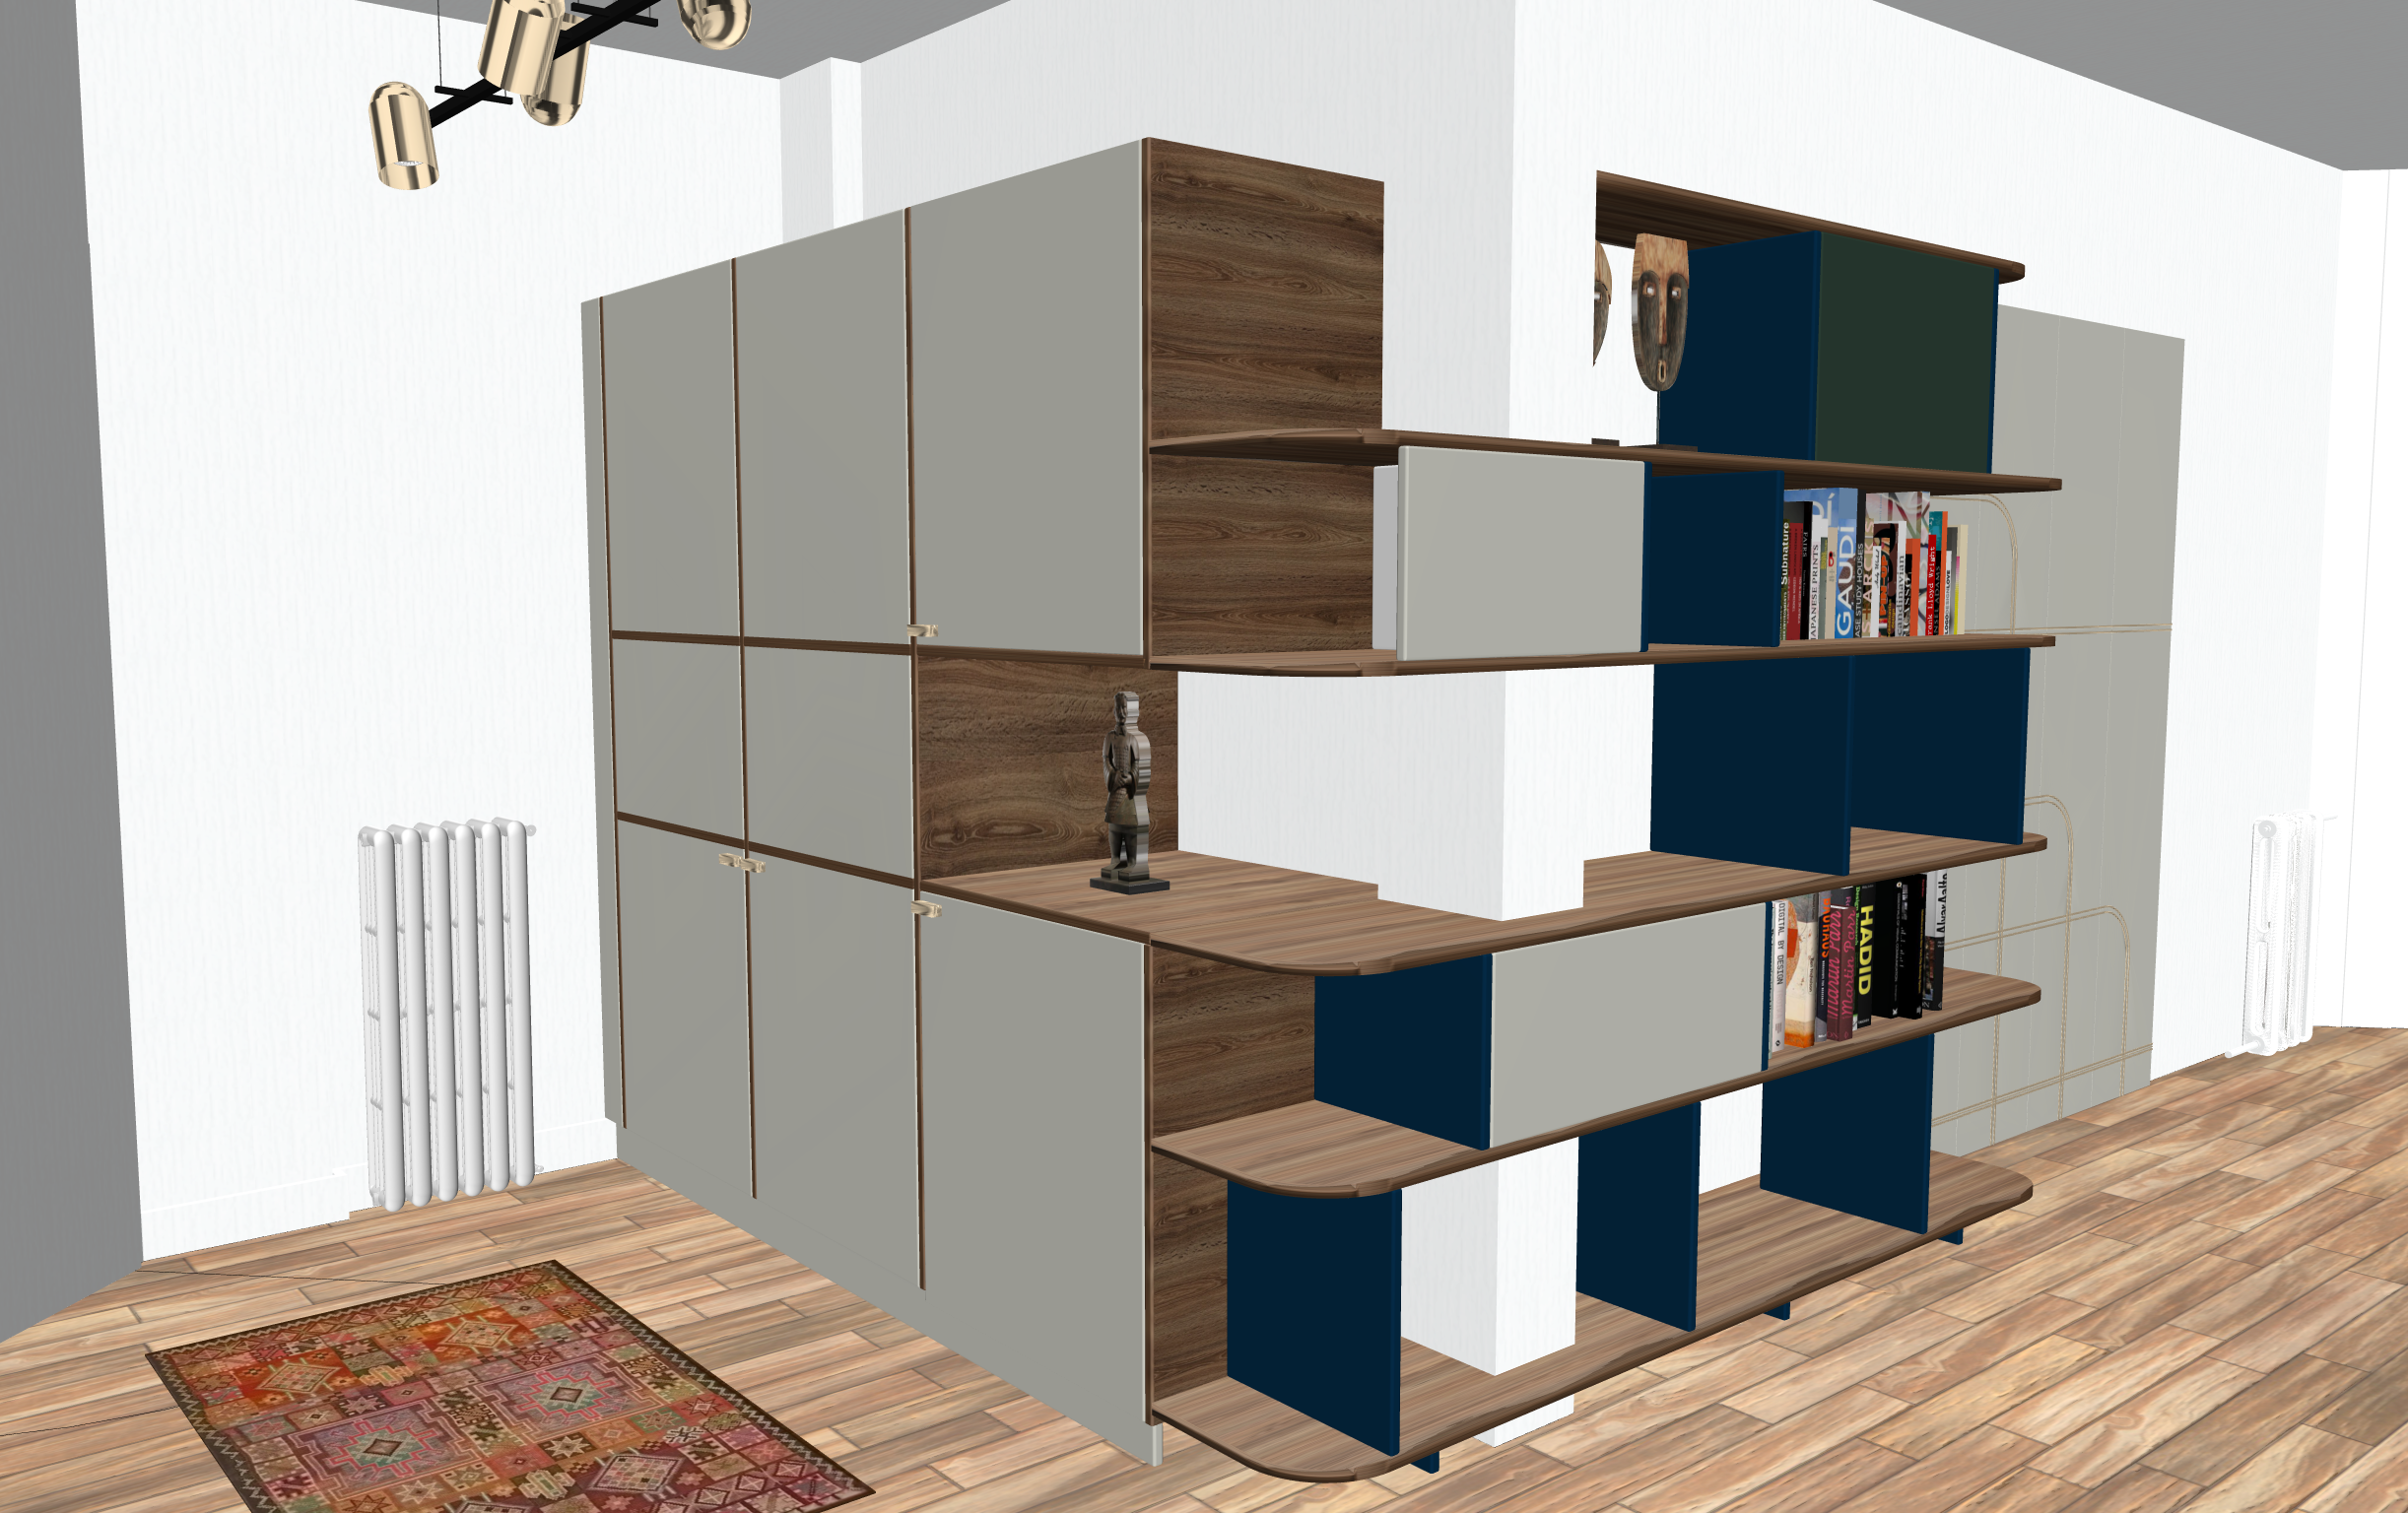 maison_bou_2019_neuilly_3d_9.png